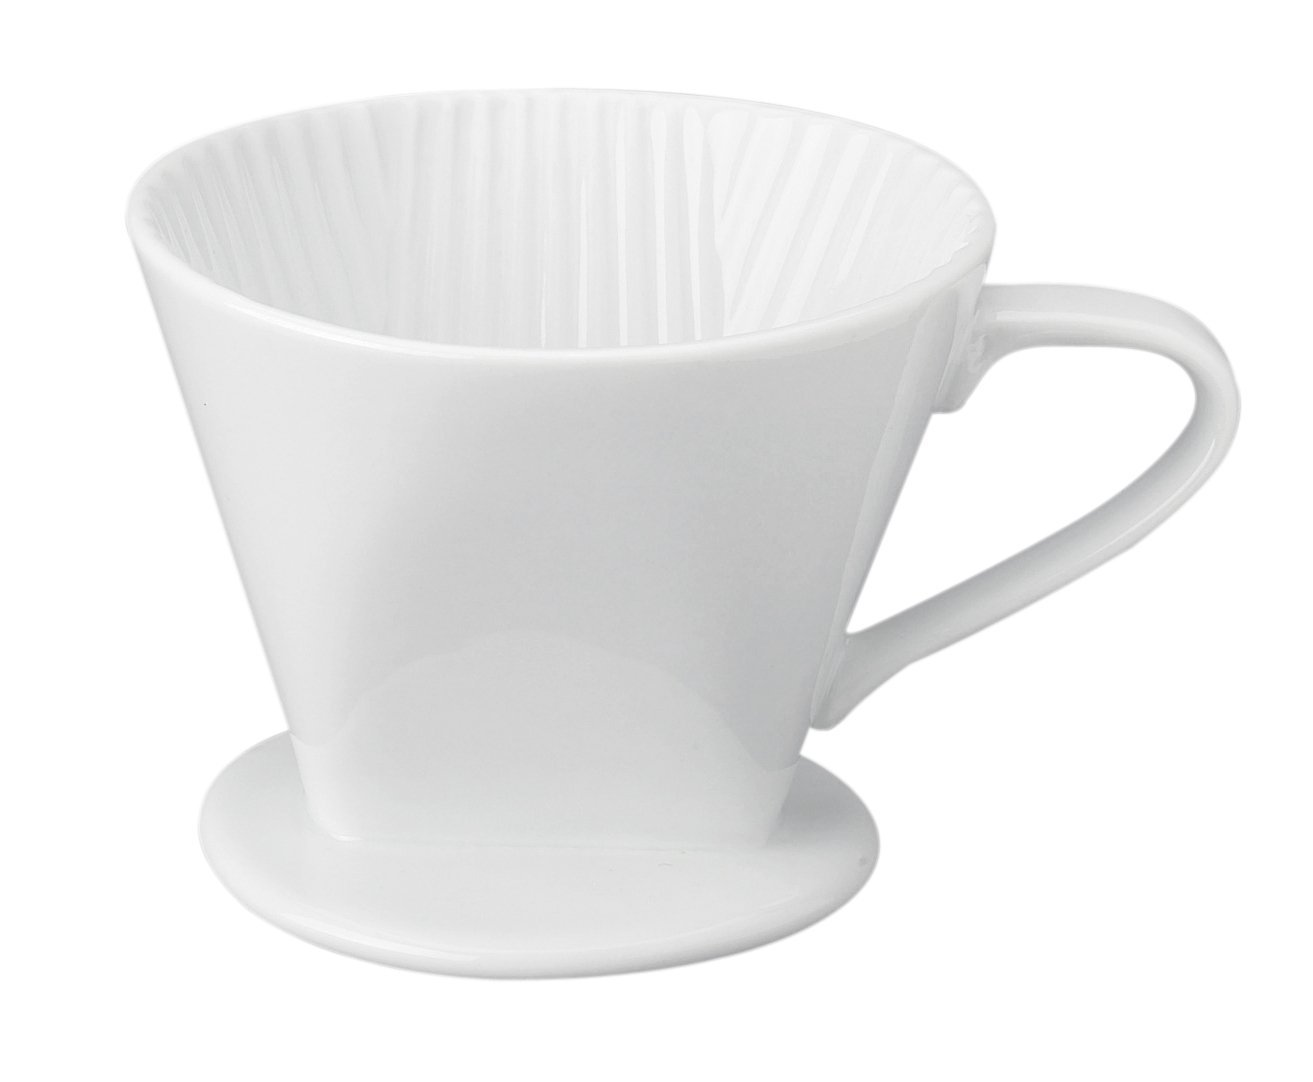 HIC Harold Import Co. HIC Filter Cone, Porcelain, Number 2-Size Filter, Brews 2 to 6-Cups